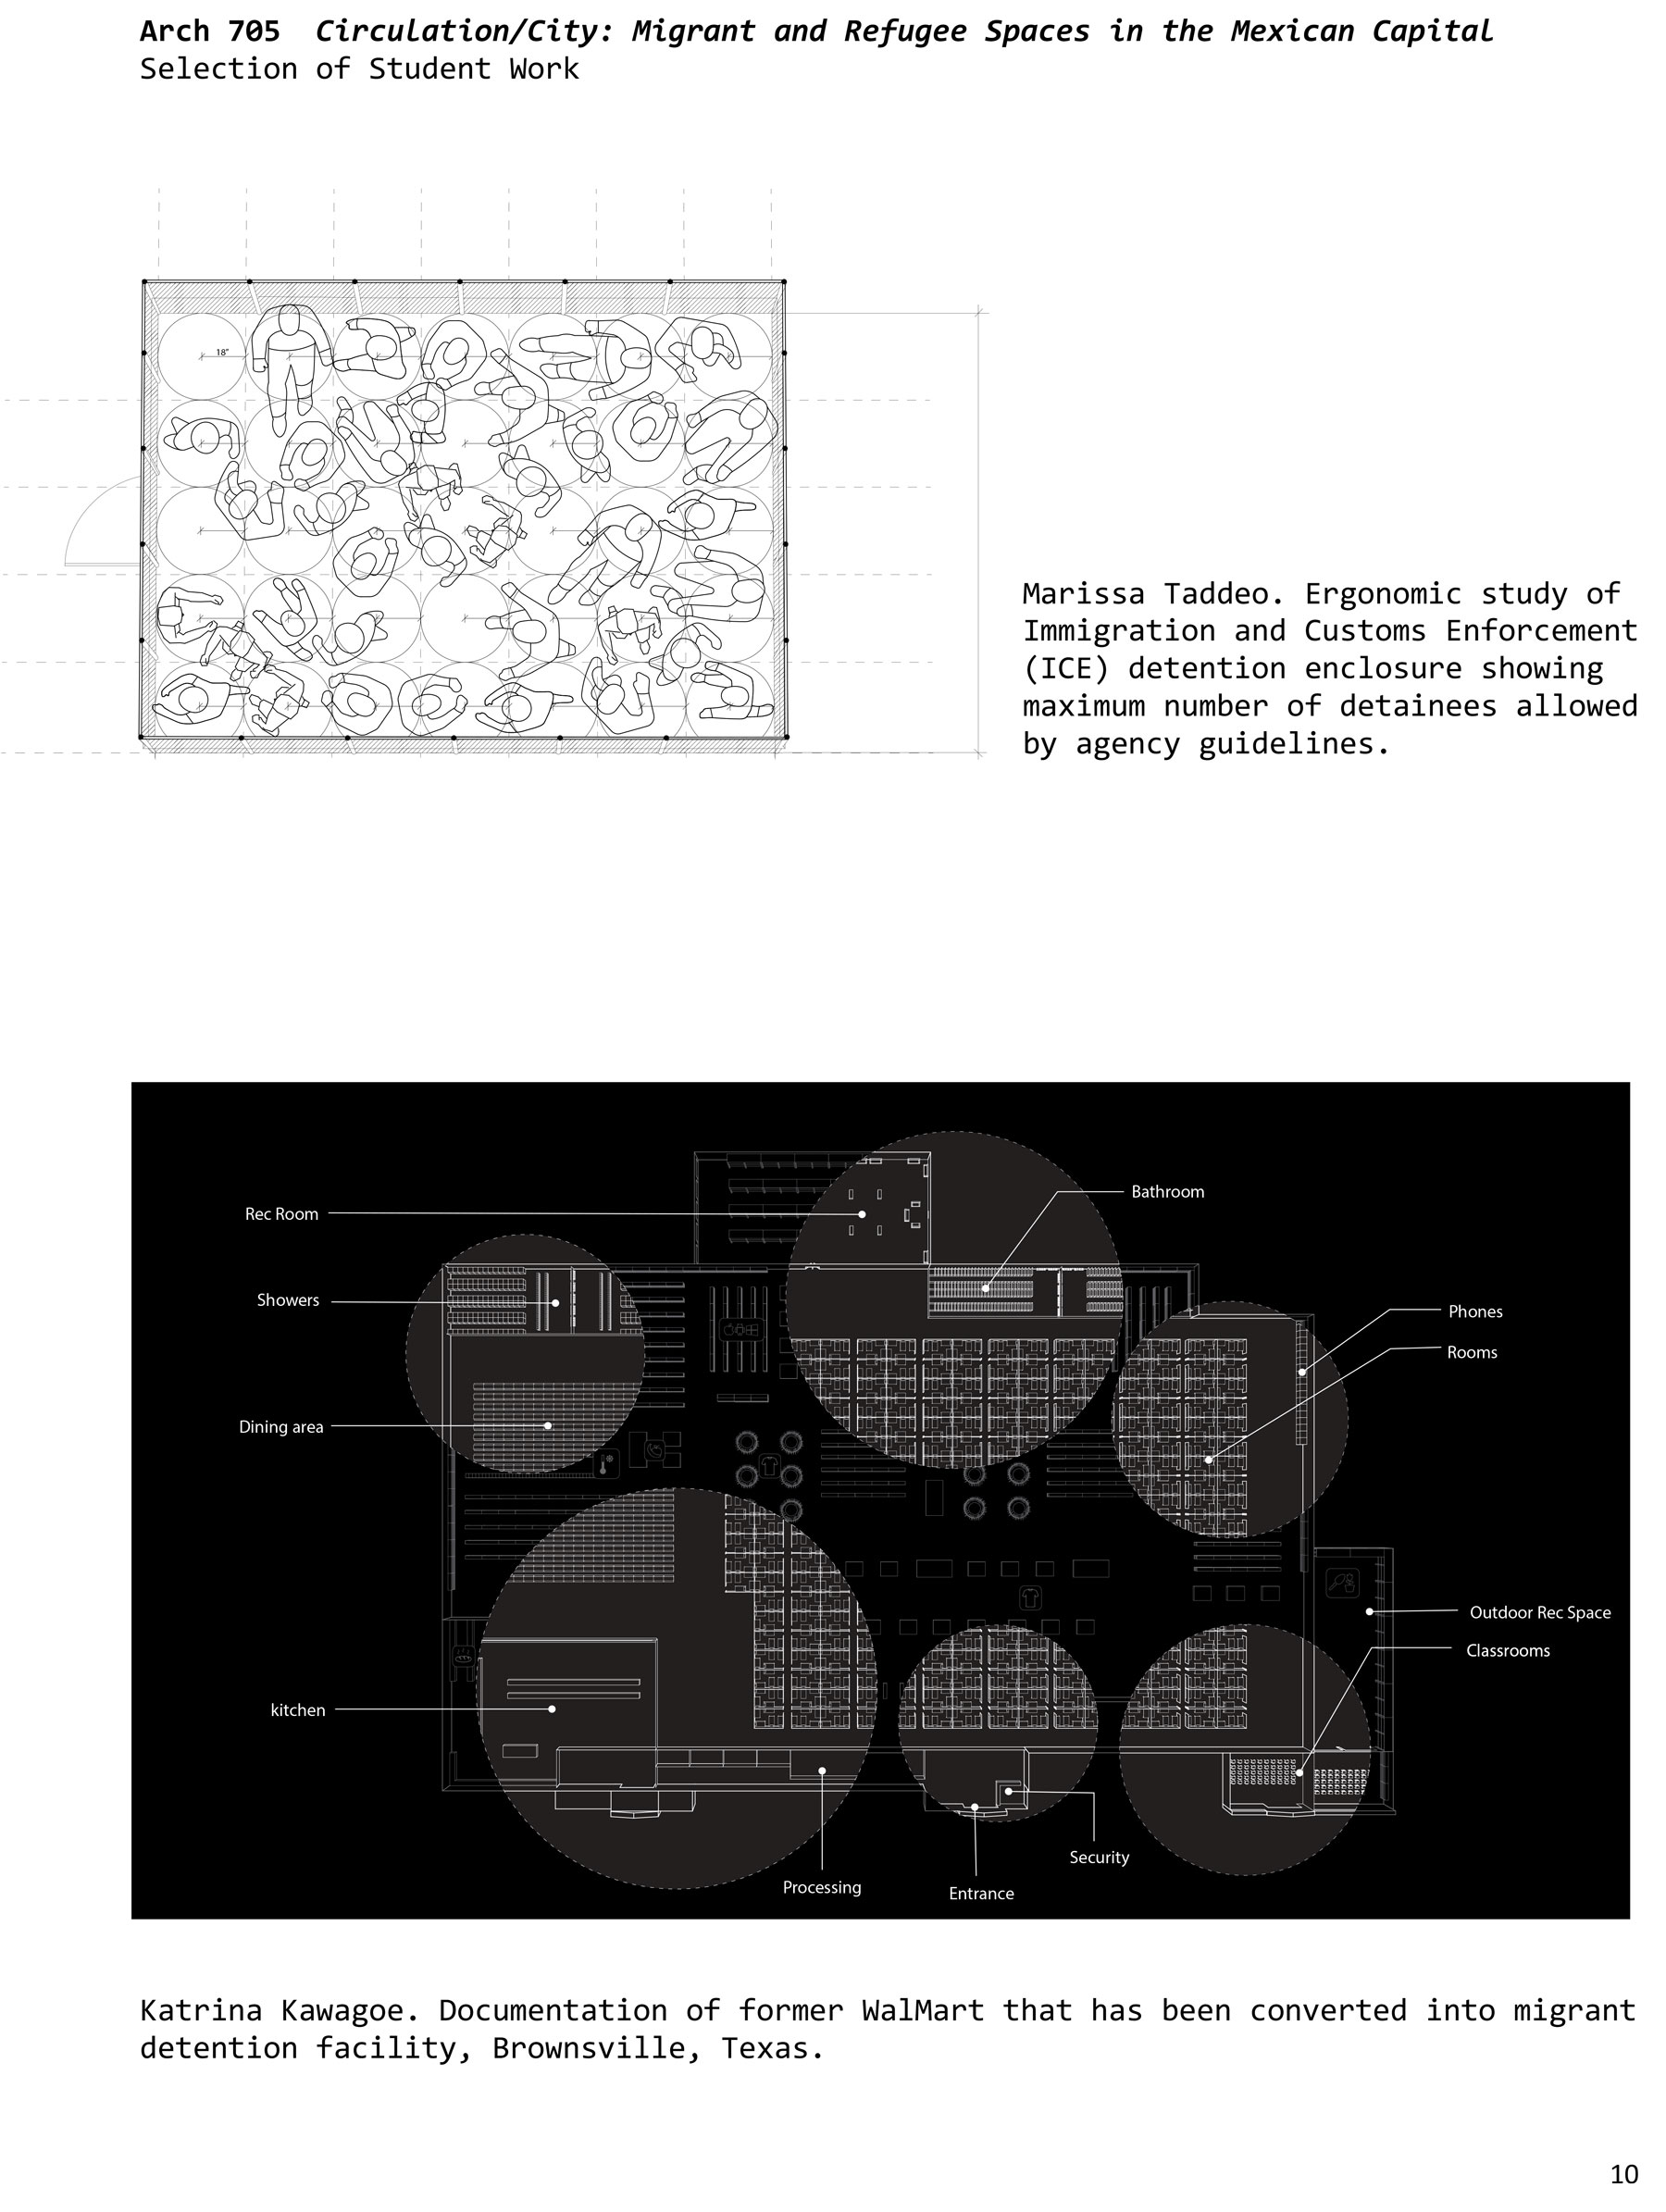 """Selected work from Marcos Sanchez's studio, """"Circulation/City: Migrant and Refugee Spaces in the Mexican Capital"""""""